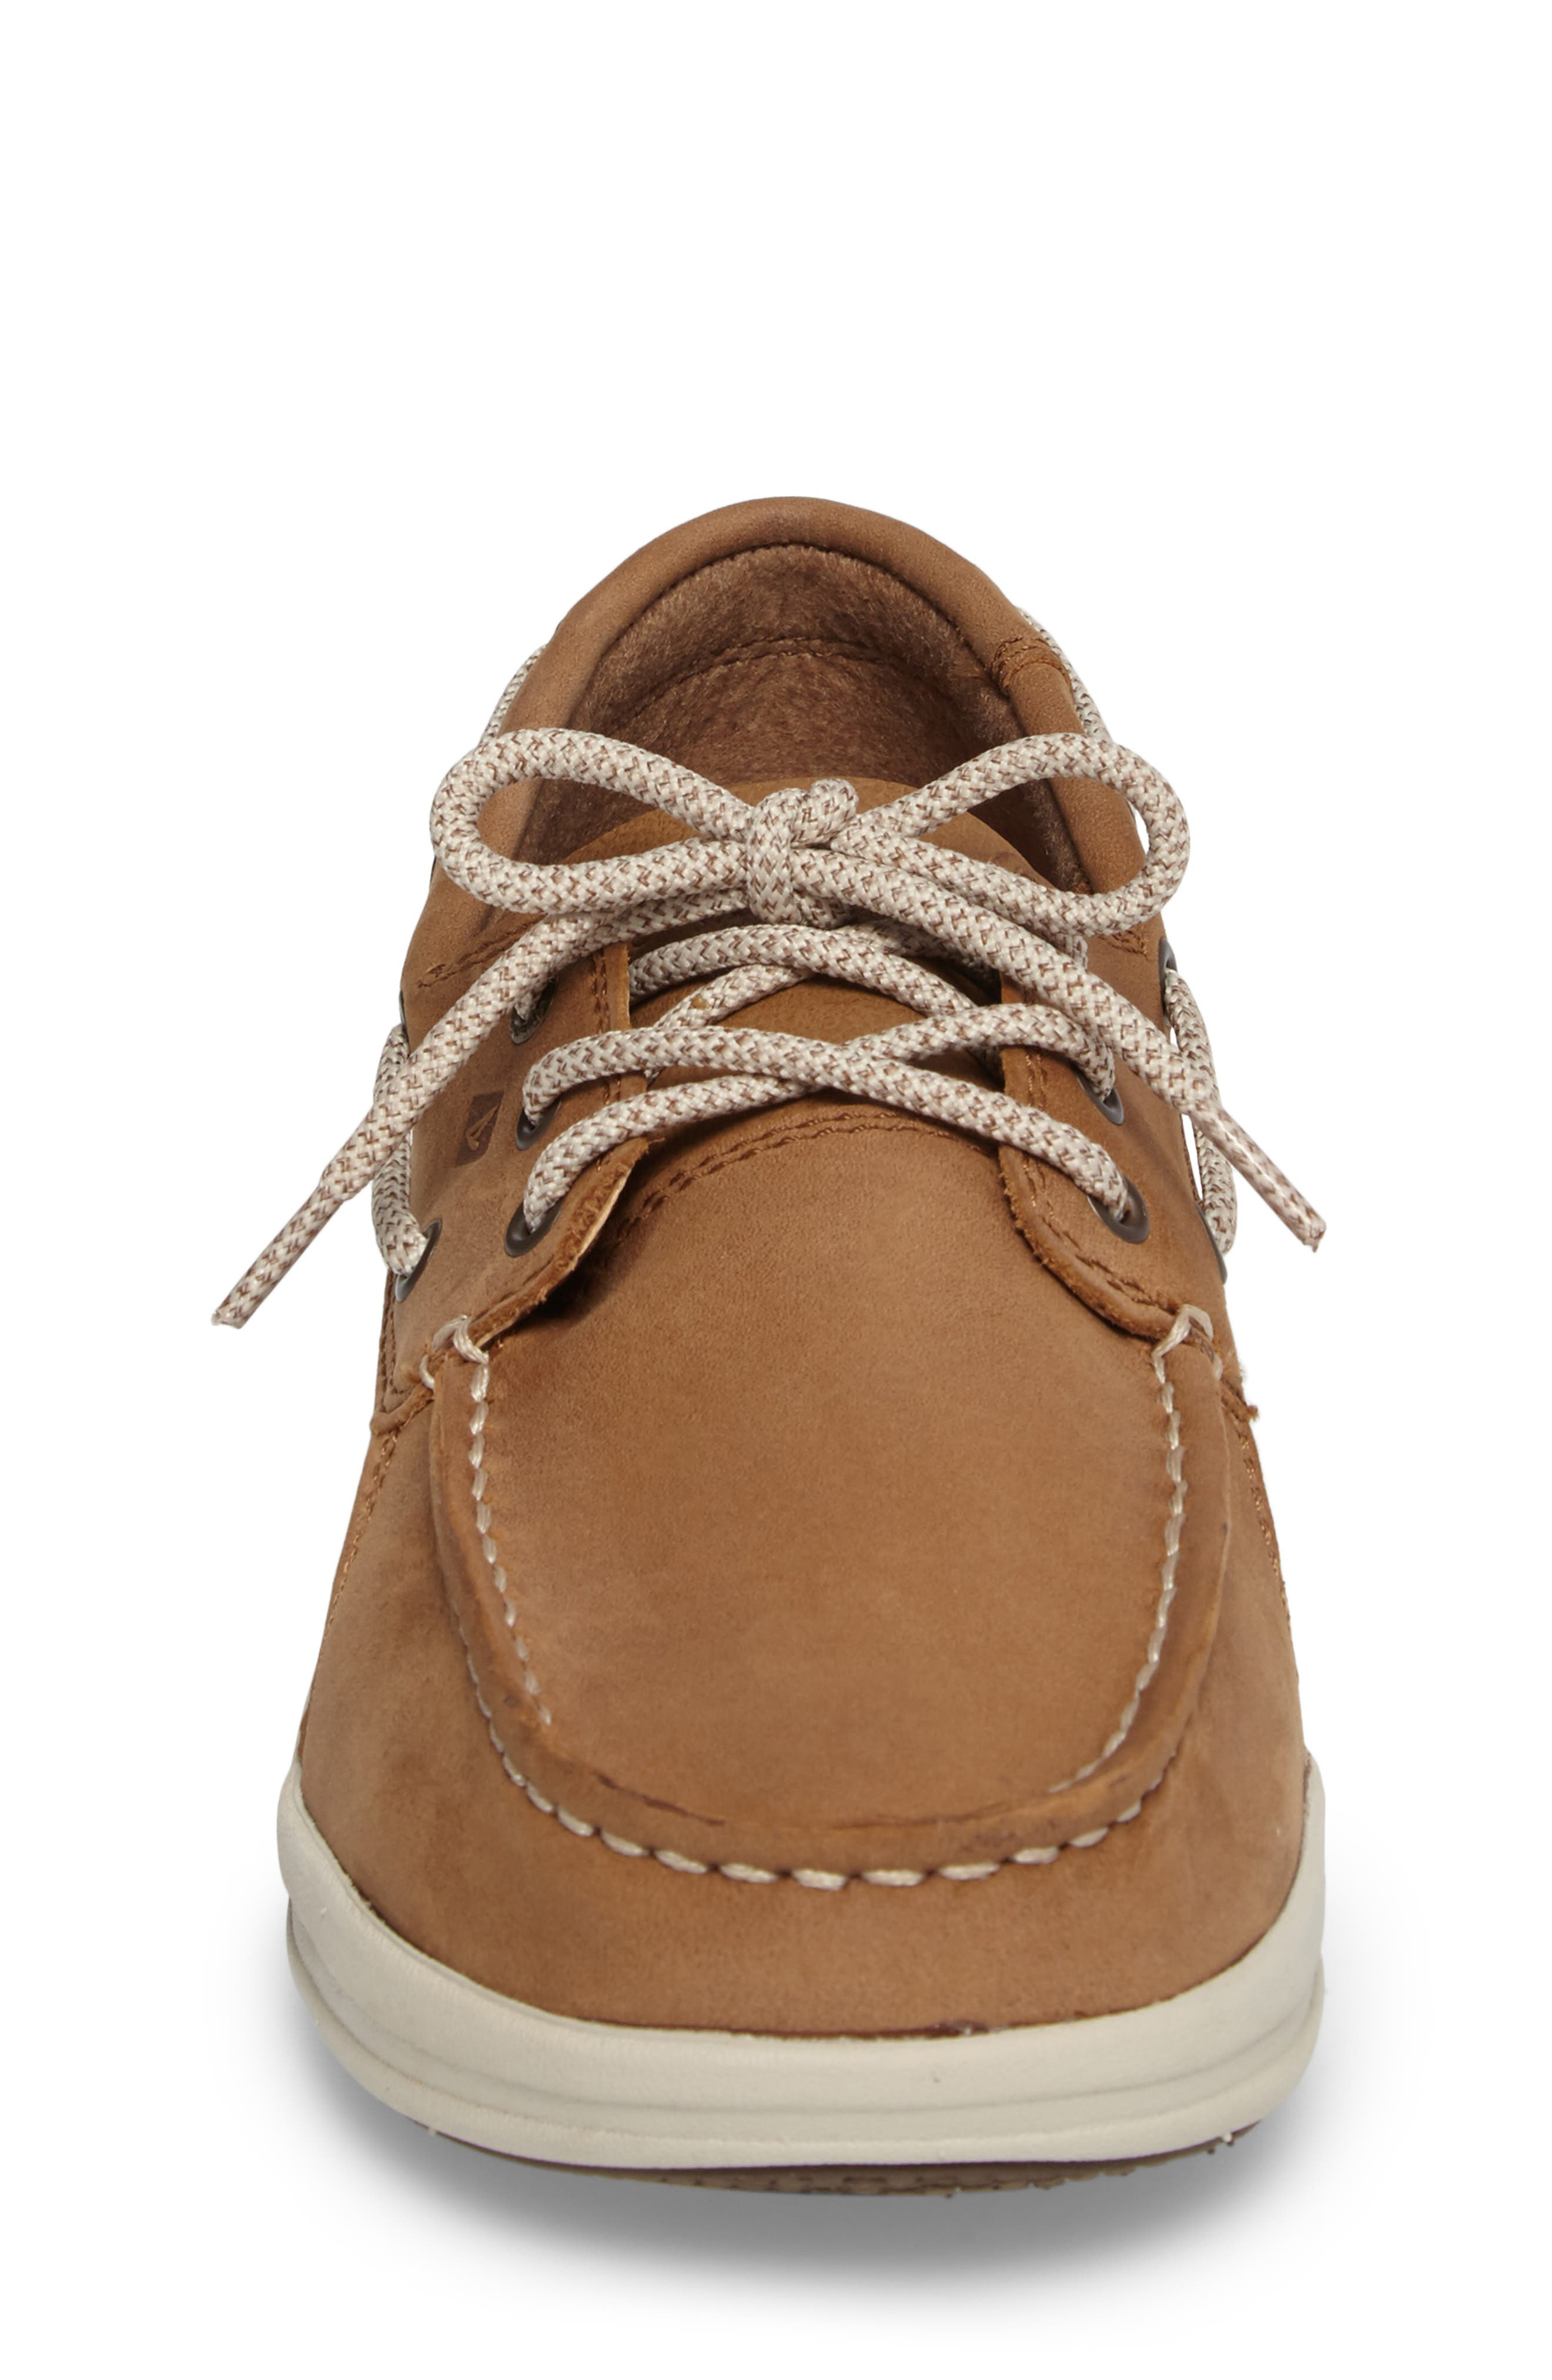 Sperry Gamefish Boat Shoe,                             Alternate thumbnail 4, color,                             Dark Tan